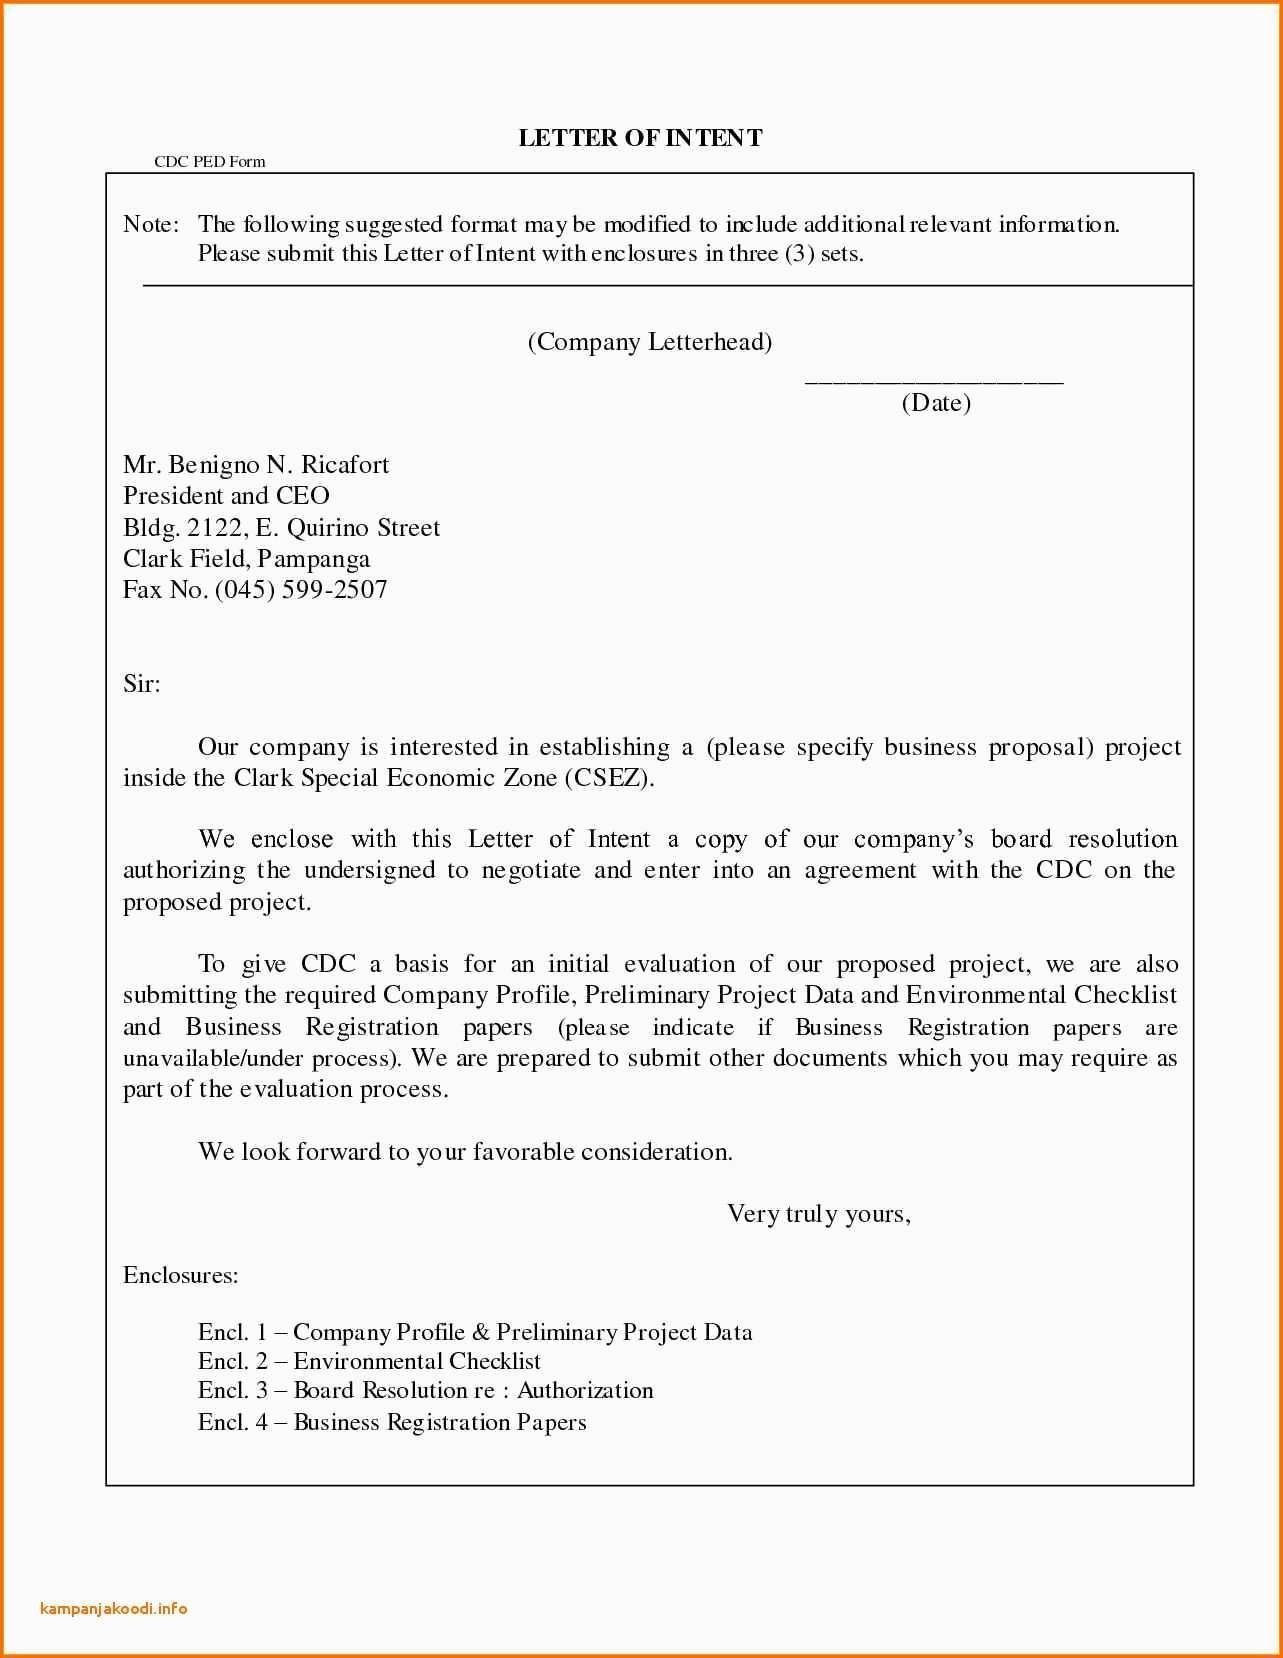 You Can See This New format for Business Letter with